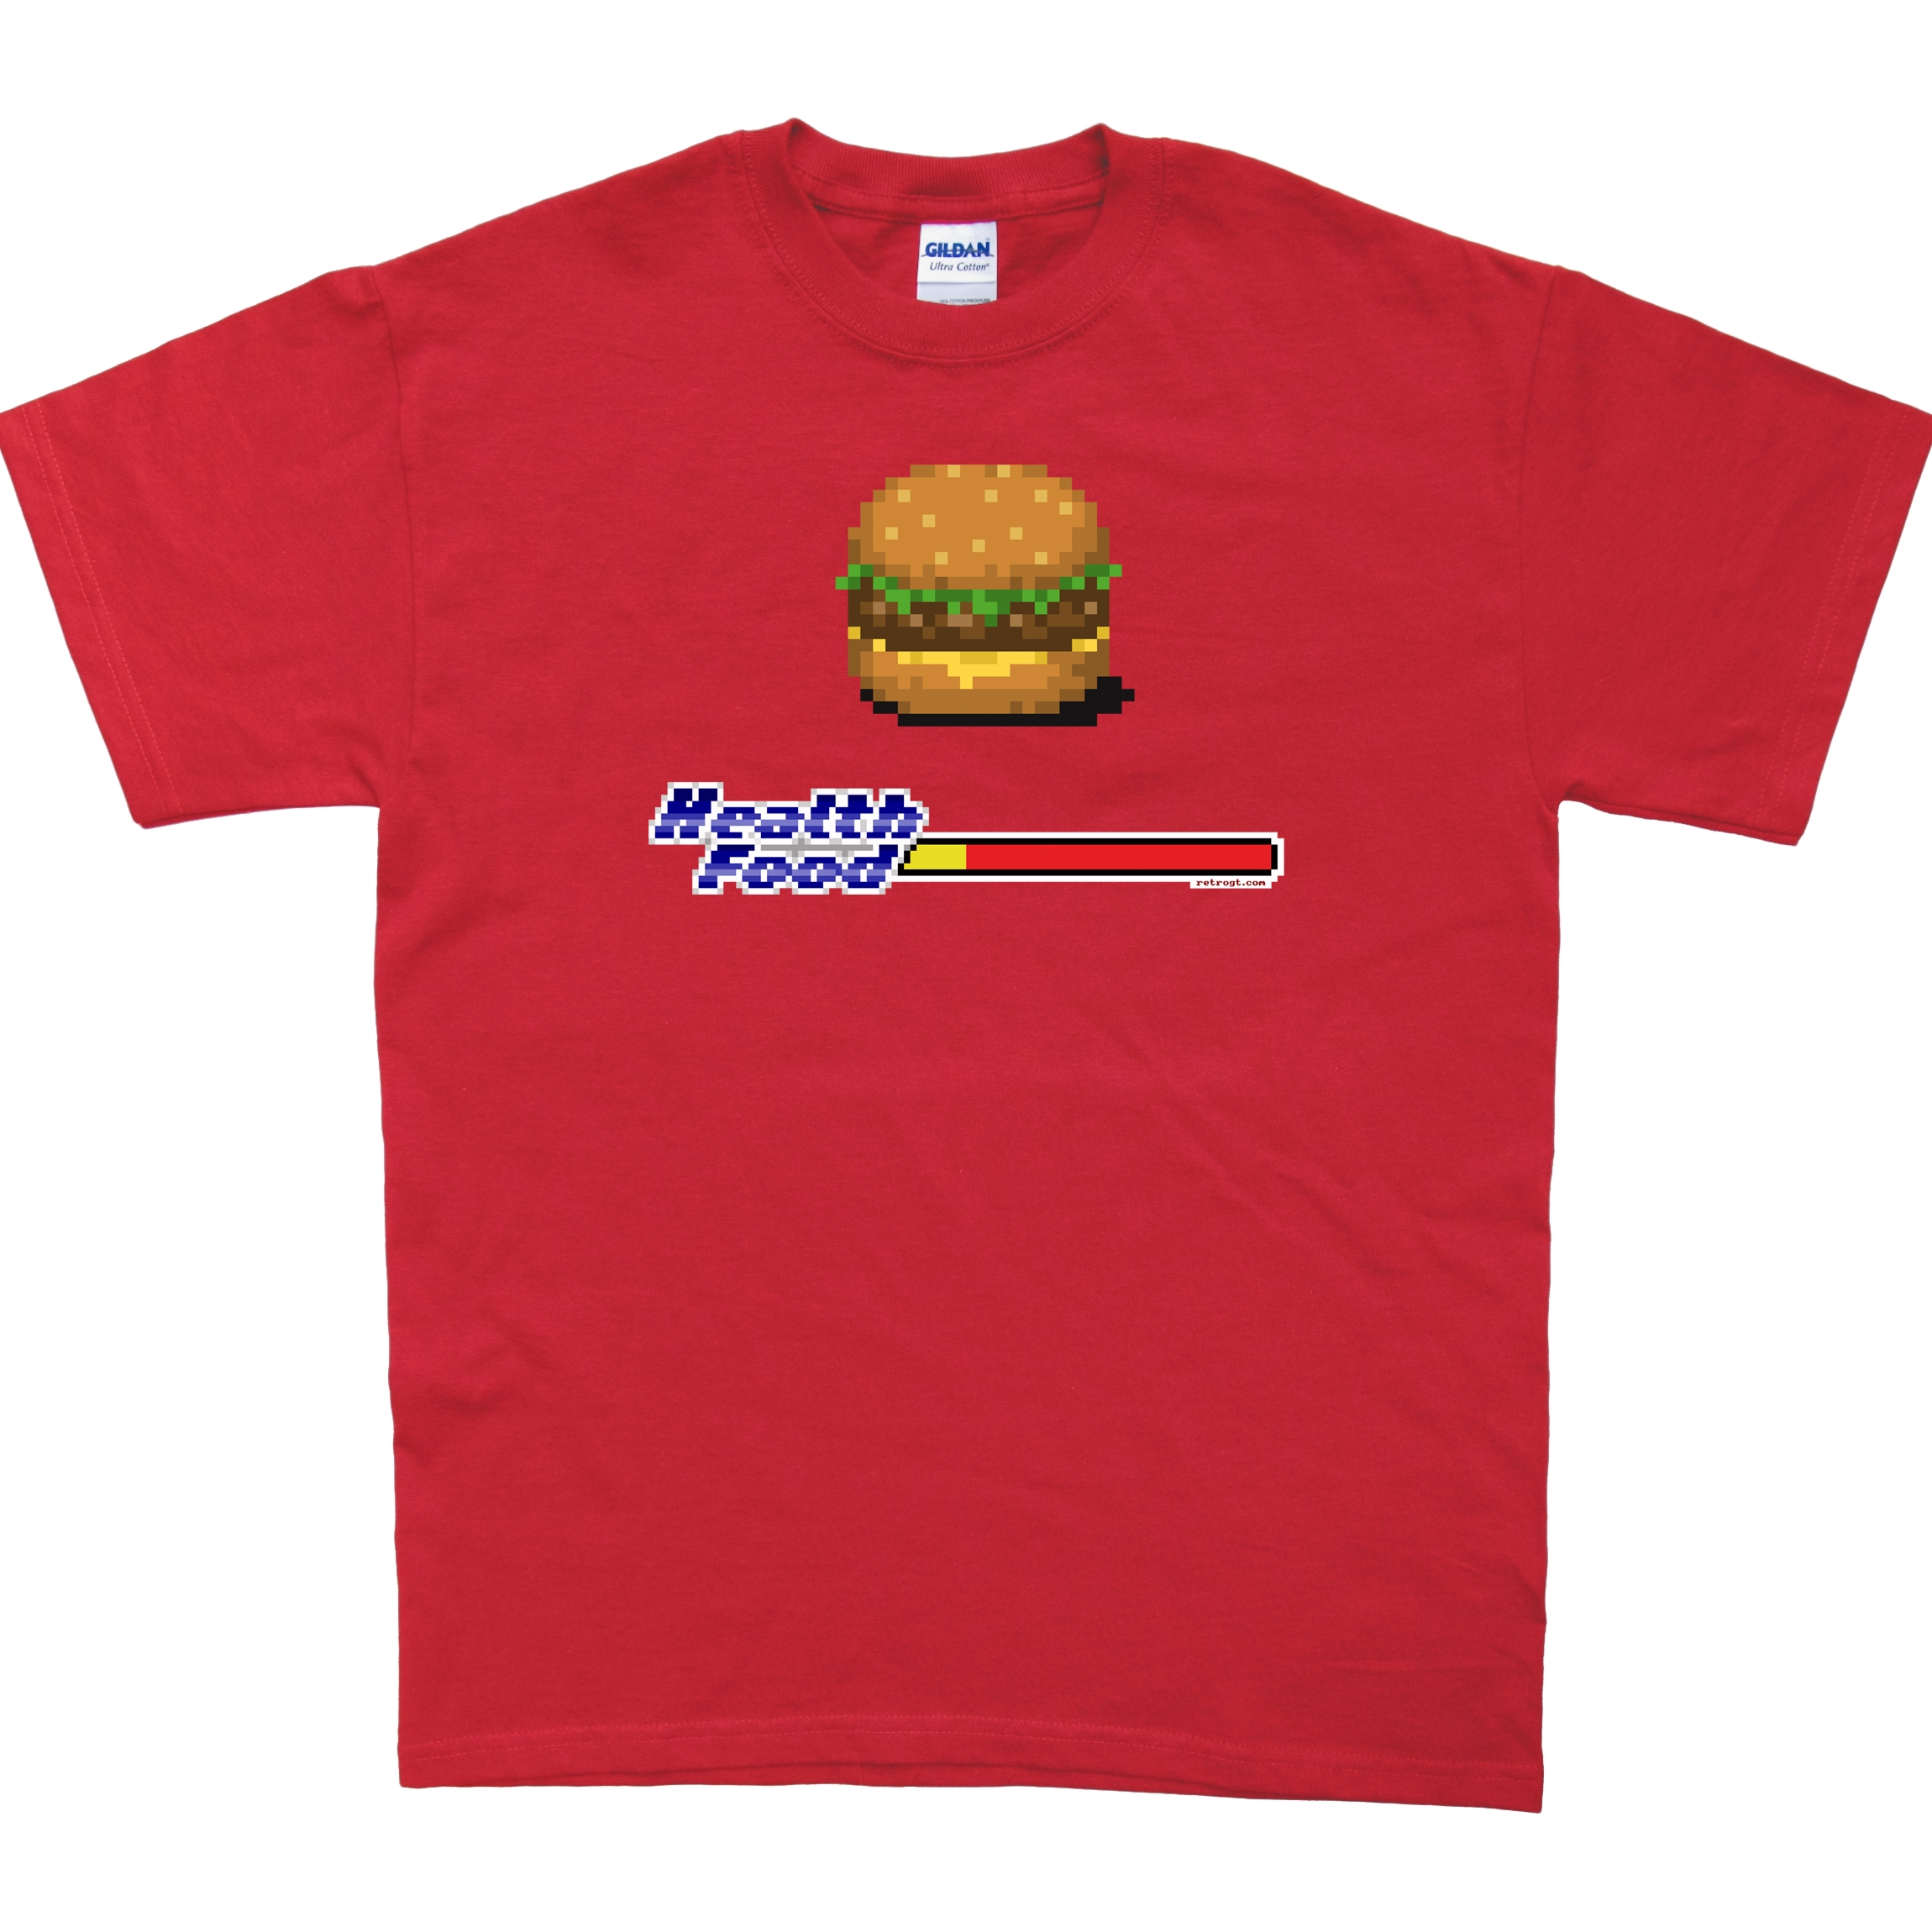 Alternative photo: Health Food Burger T-Shirt